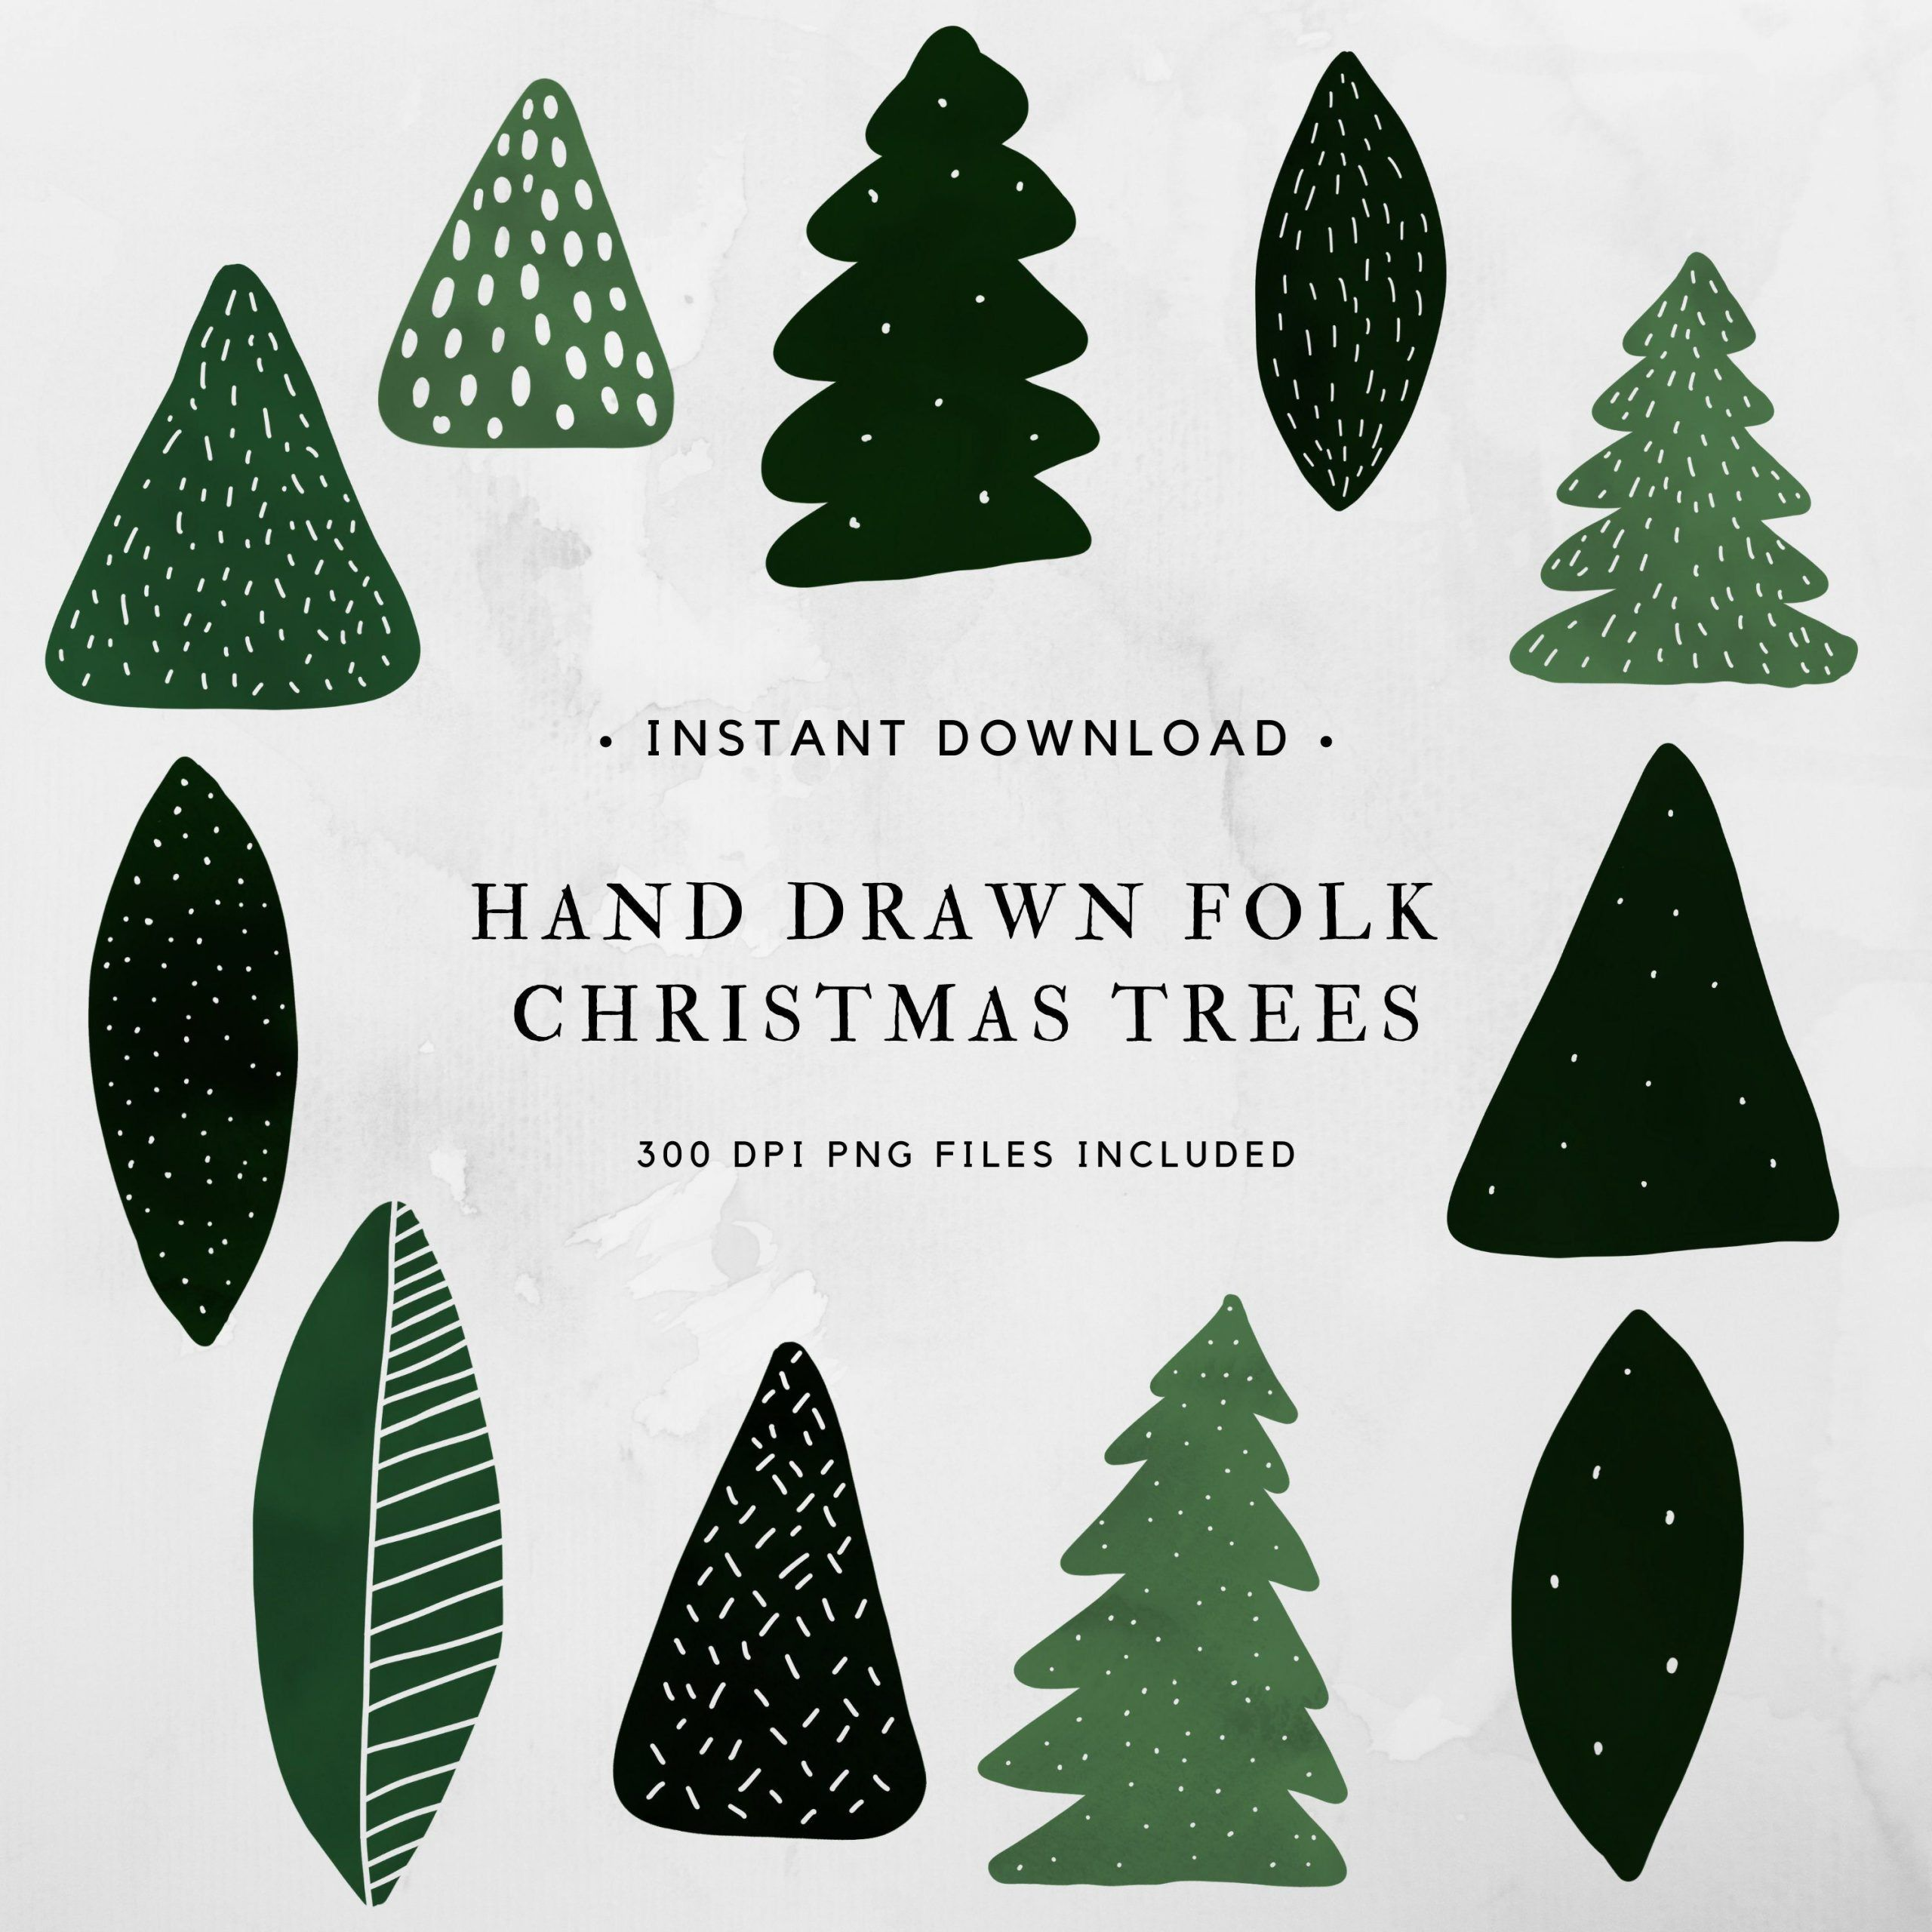 Folk Pine Tree Clipart Pine Tree Clip Art Christmas Tree Clipart Christmas Tree Artchristmas C In 2020 Christmas Tree Clipart Christmas Card Template Tree Clipart